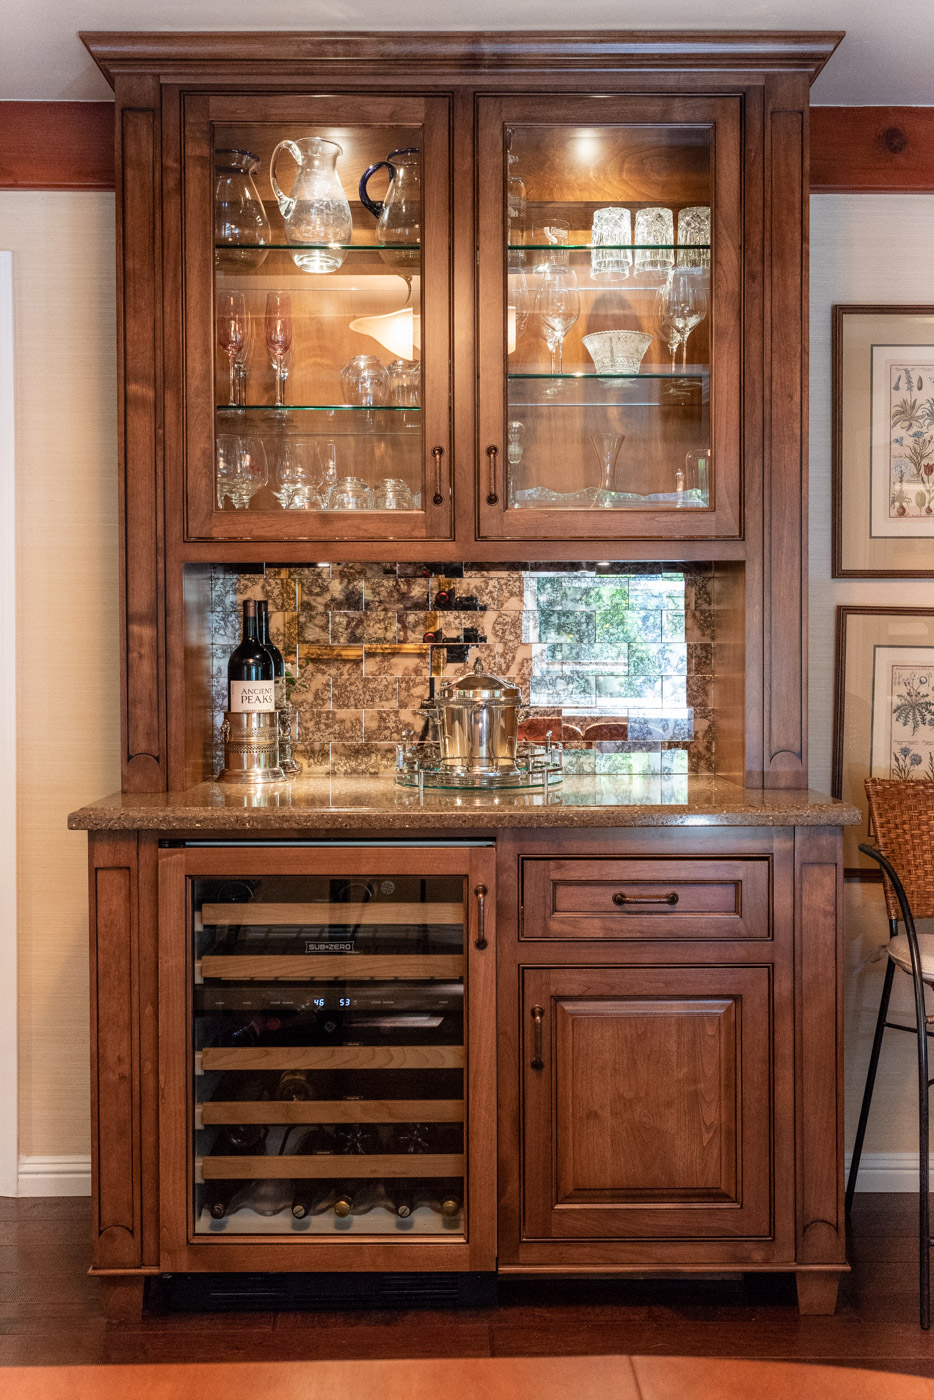 Glass cabinet door panels with glass shelving